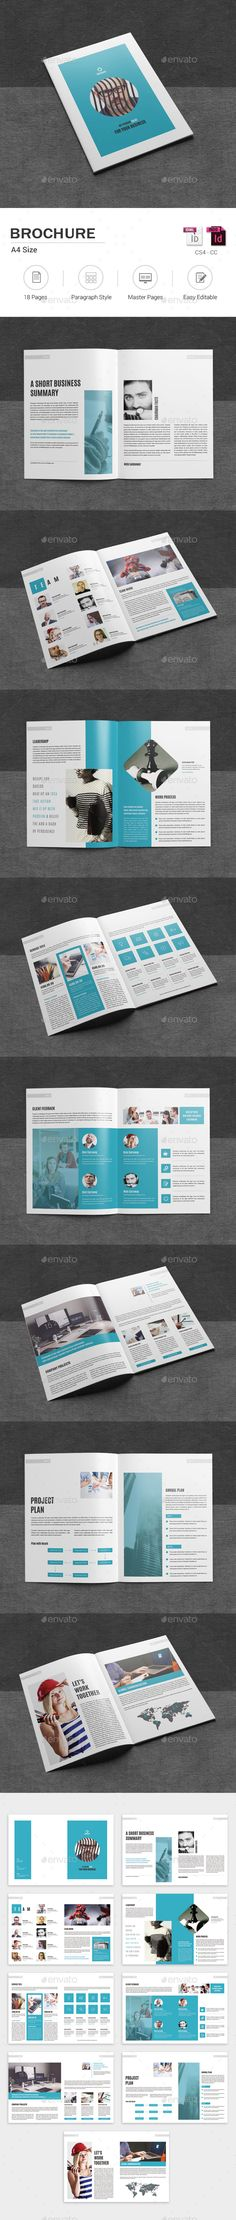 Brochure — InDesign INDD #advertising #company brochure • Download ➝ https://graphicriver.net/item/brochure/19427935?ref=pxcr